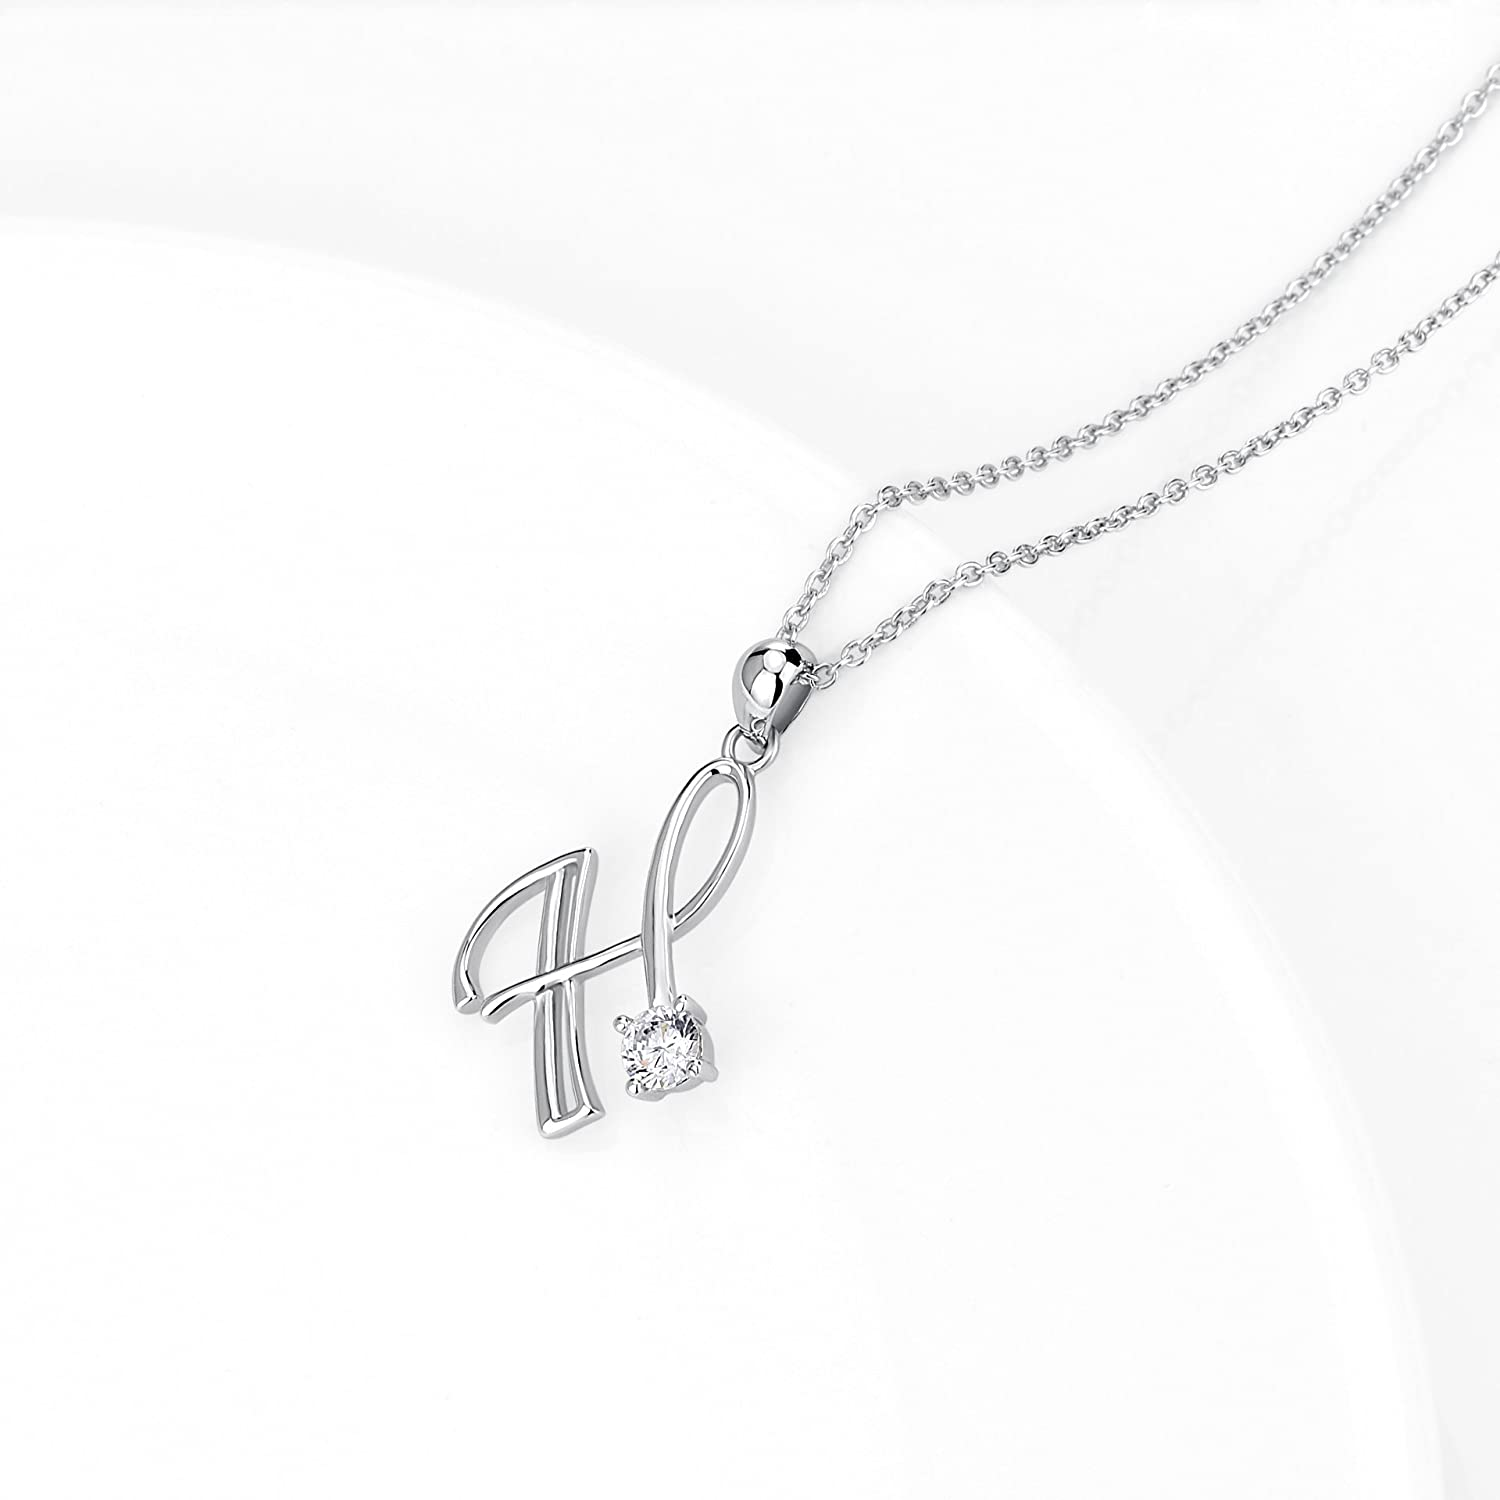 97f541cd68772c YFN Initial Necklace 925 Sterling Silver Letters 26 Alphabet Pendant  Necklace YFN Jewelry PYX0275